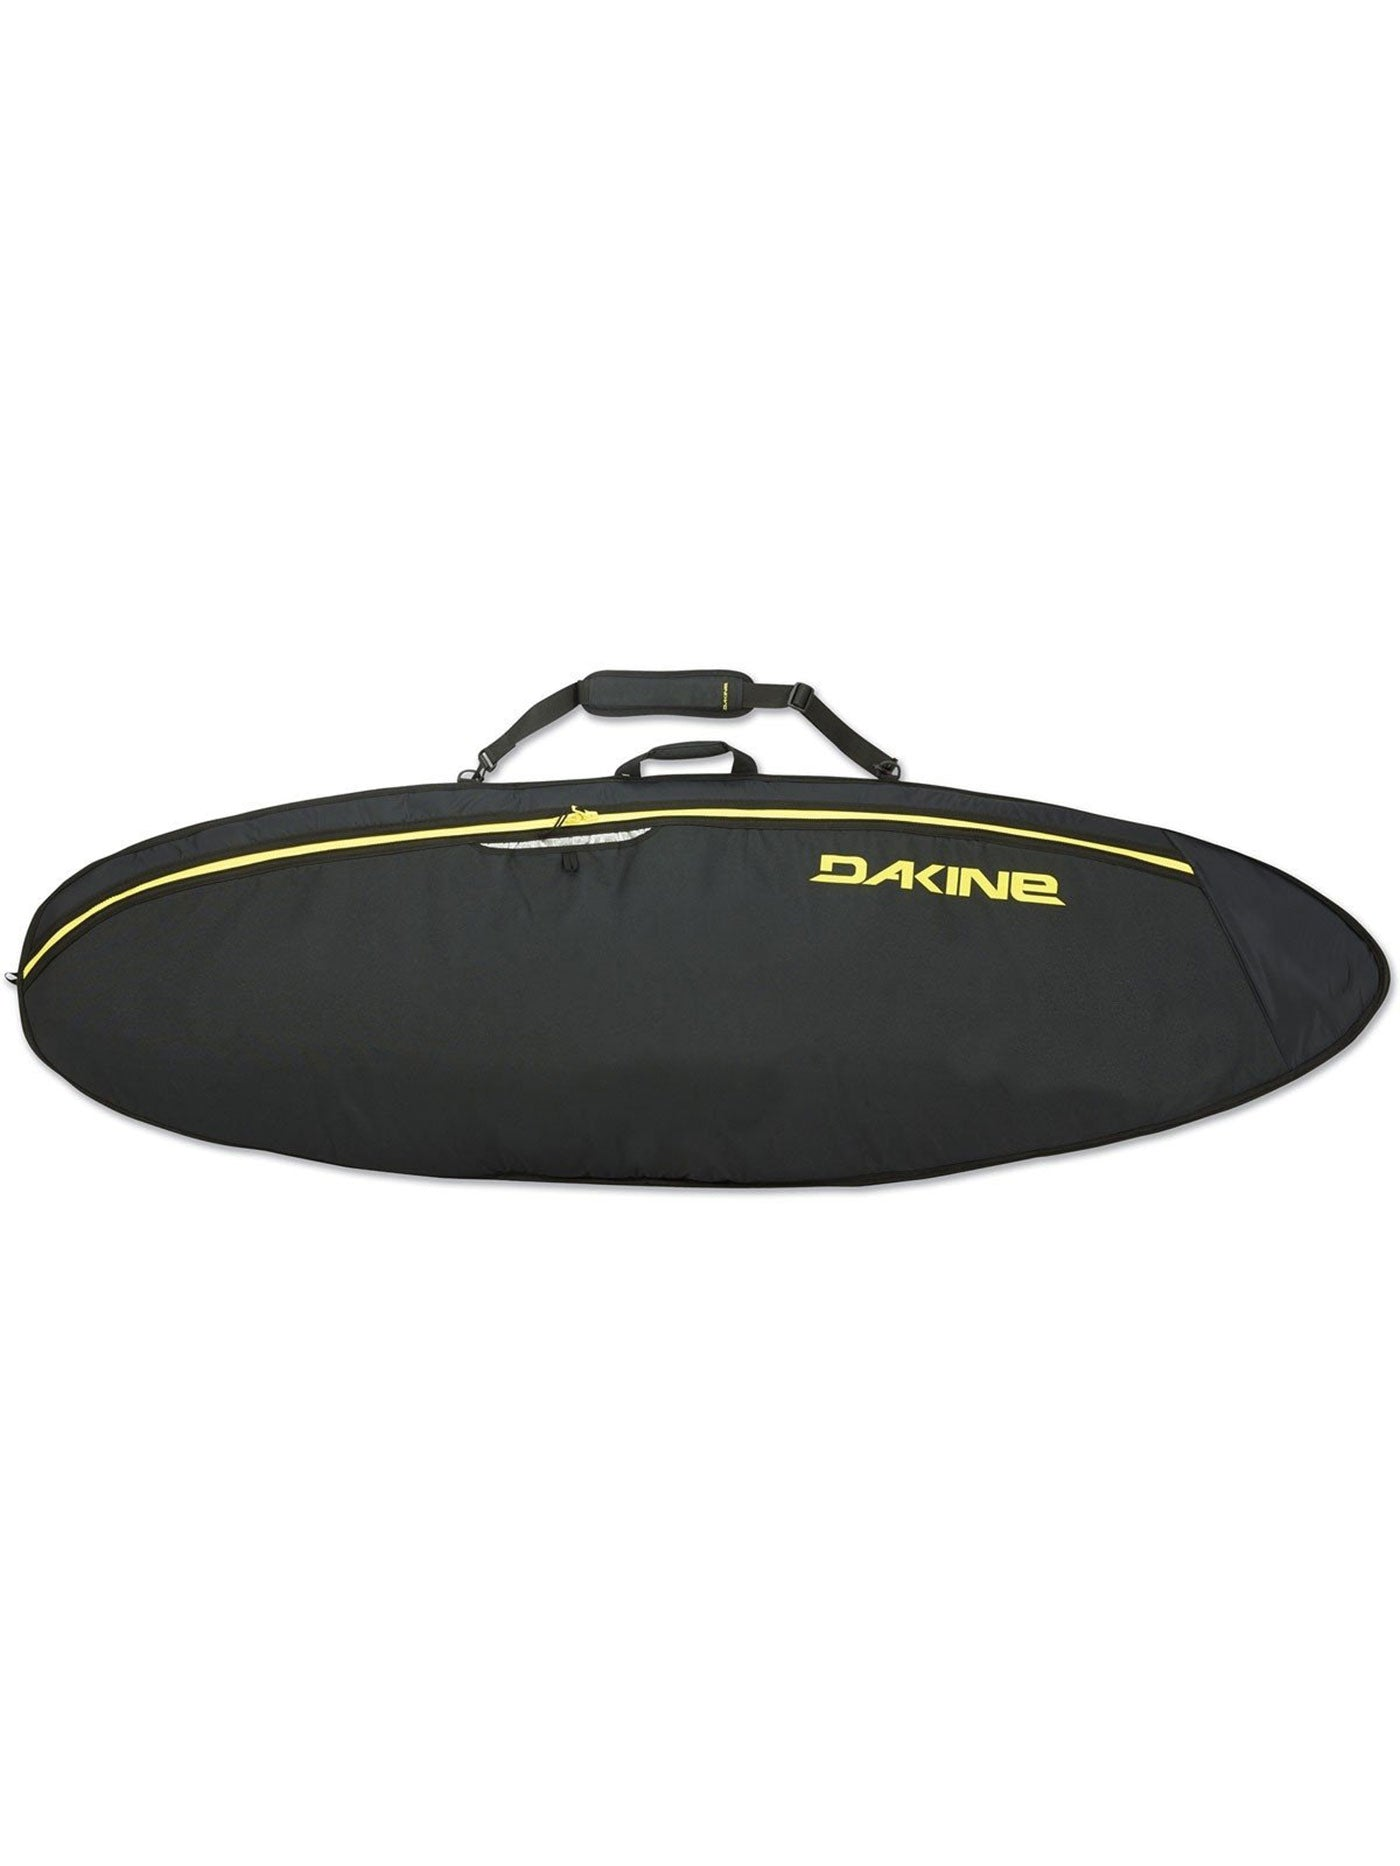 6'6'' Recon Thruster Surfboard Bag